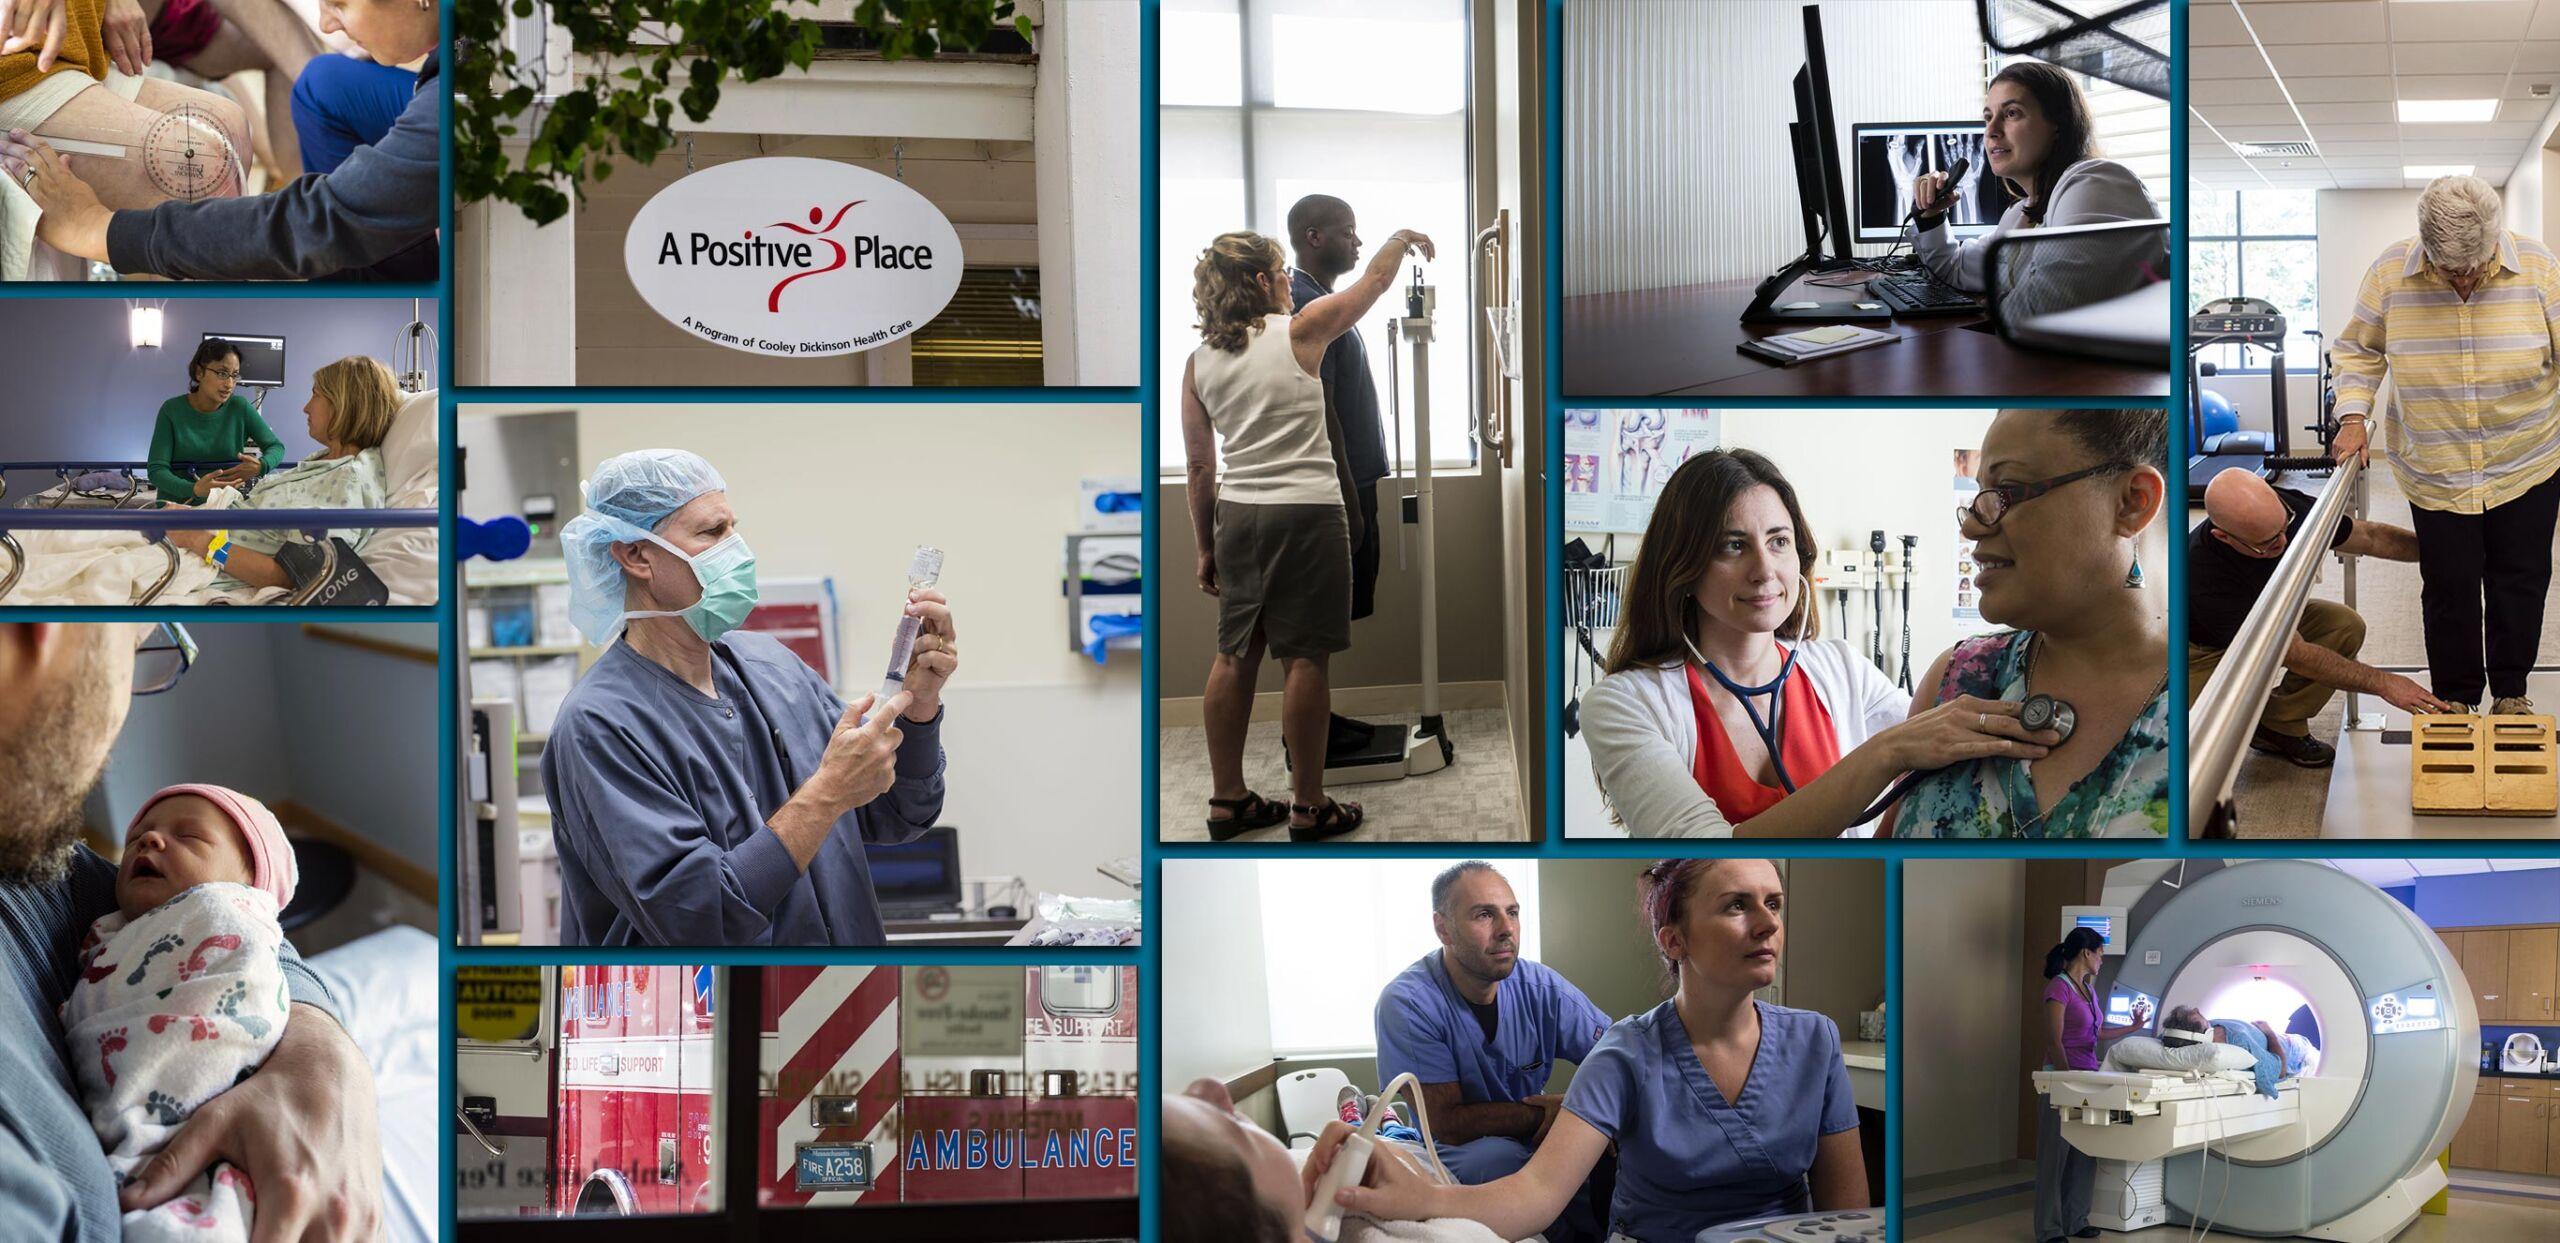 Photo montage showing programs, services, providers, and facilities provided by the Cooley Dickinson Health Care system, Northampton, MA 01060.